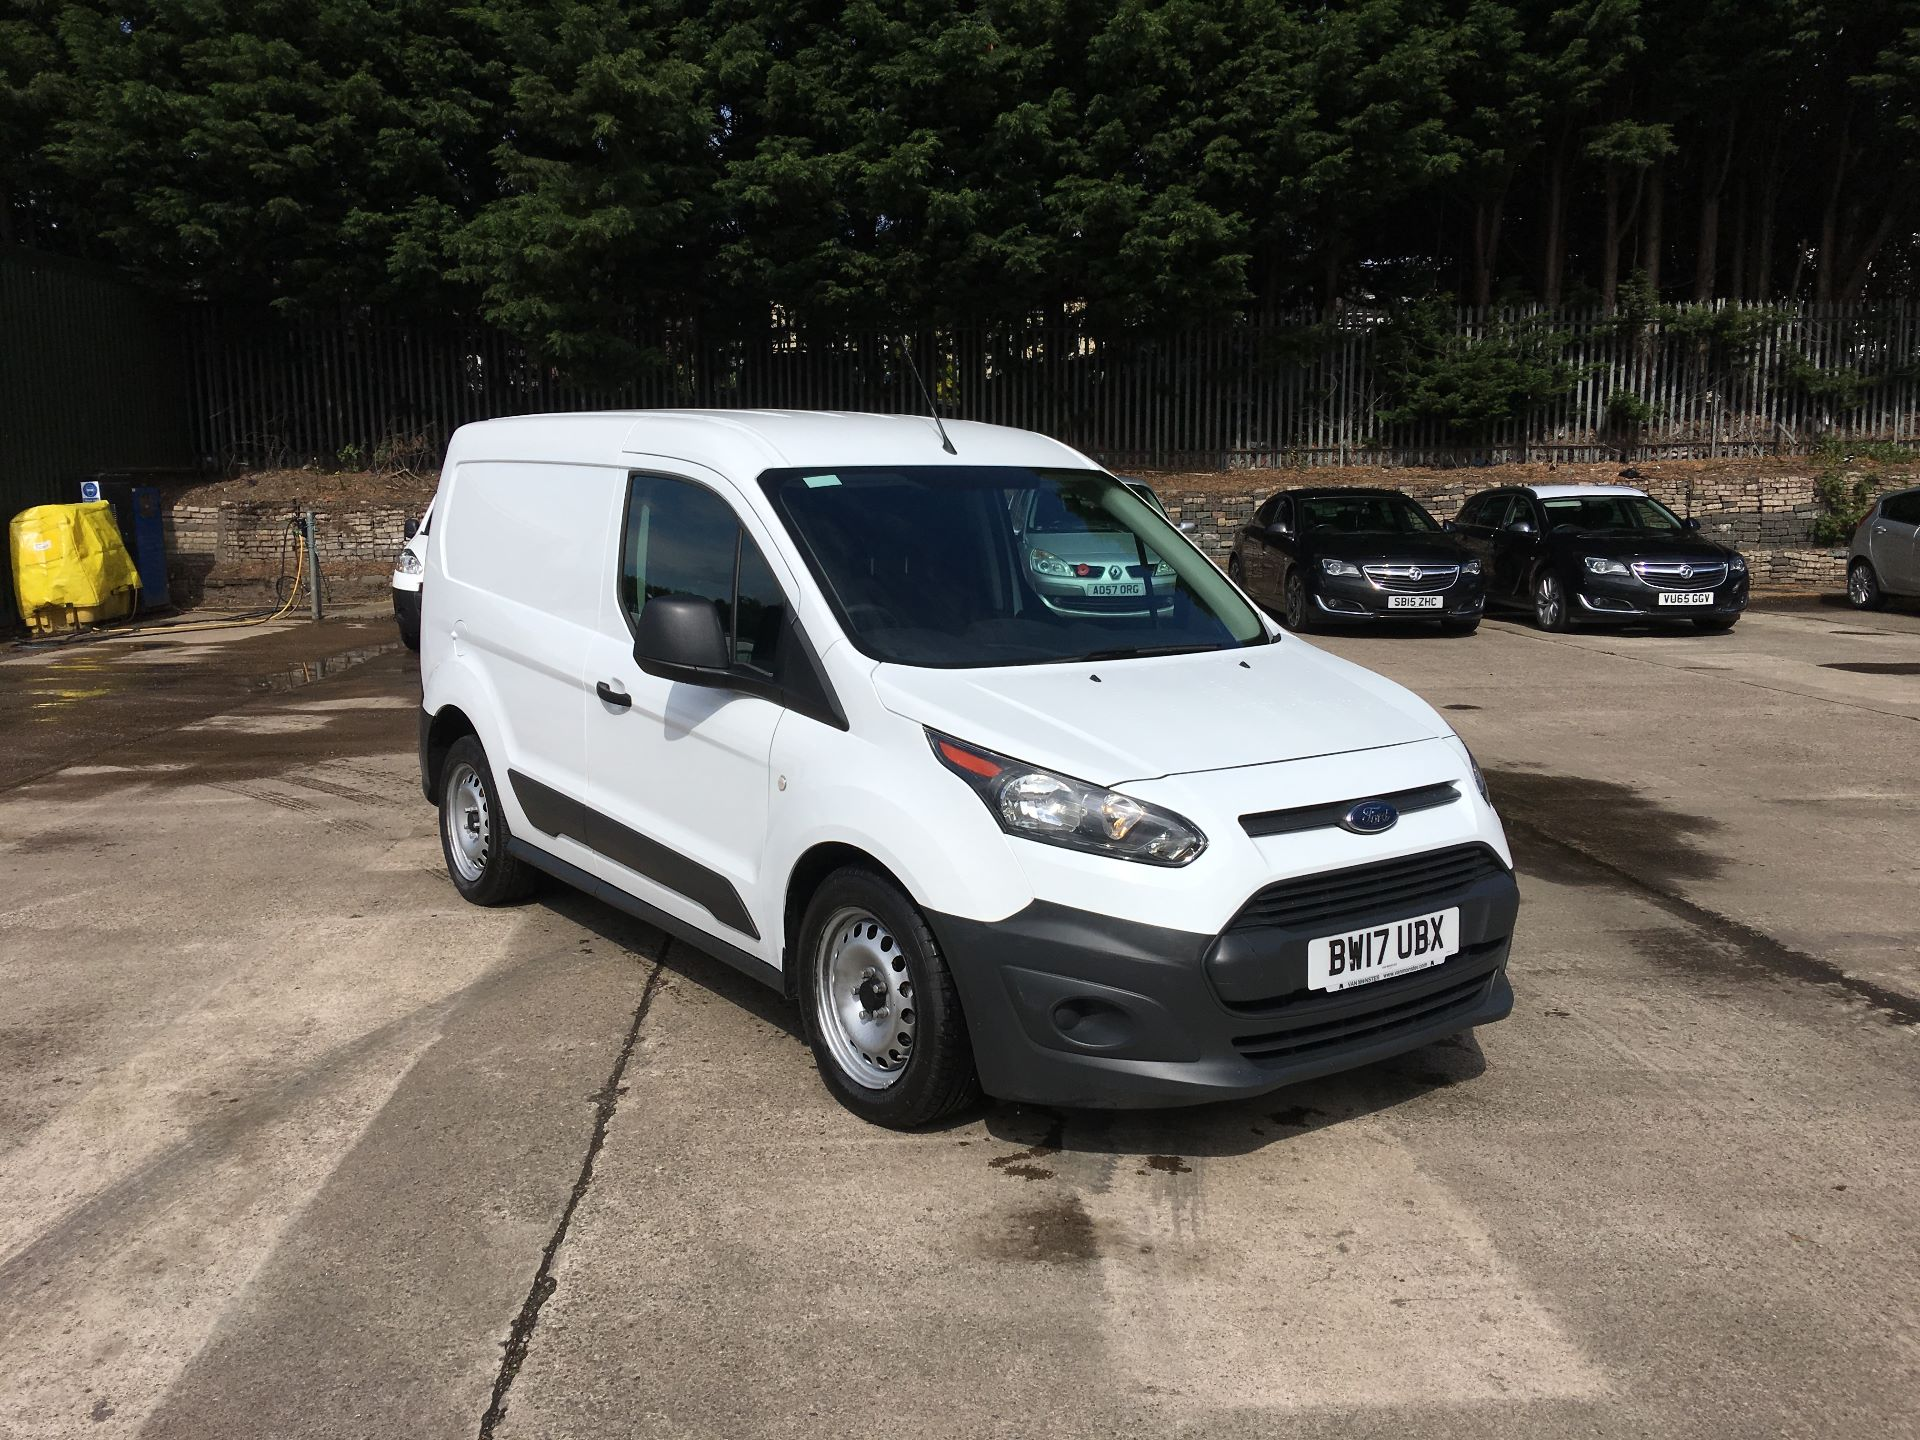 2017 Ford Transit Connect 200 L1 DIESEL 1.5 TDCI 75PS VAN EURO 5 (BW17UBX)